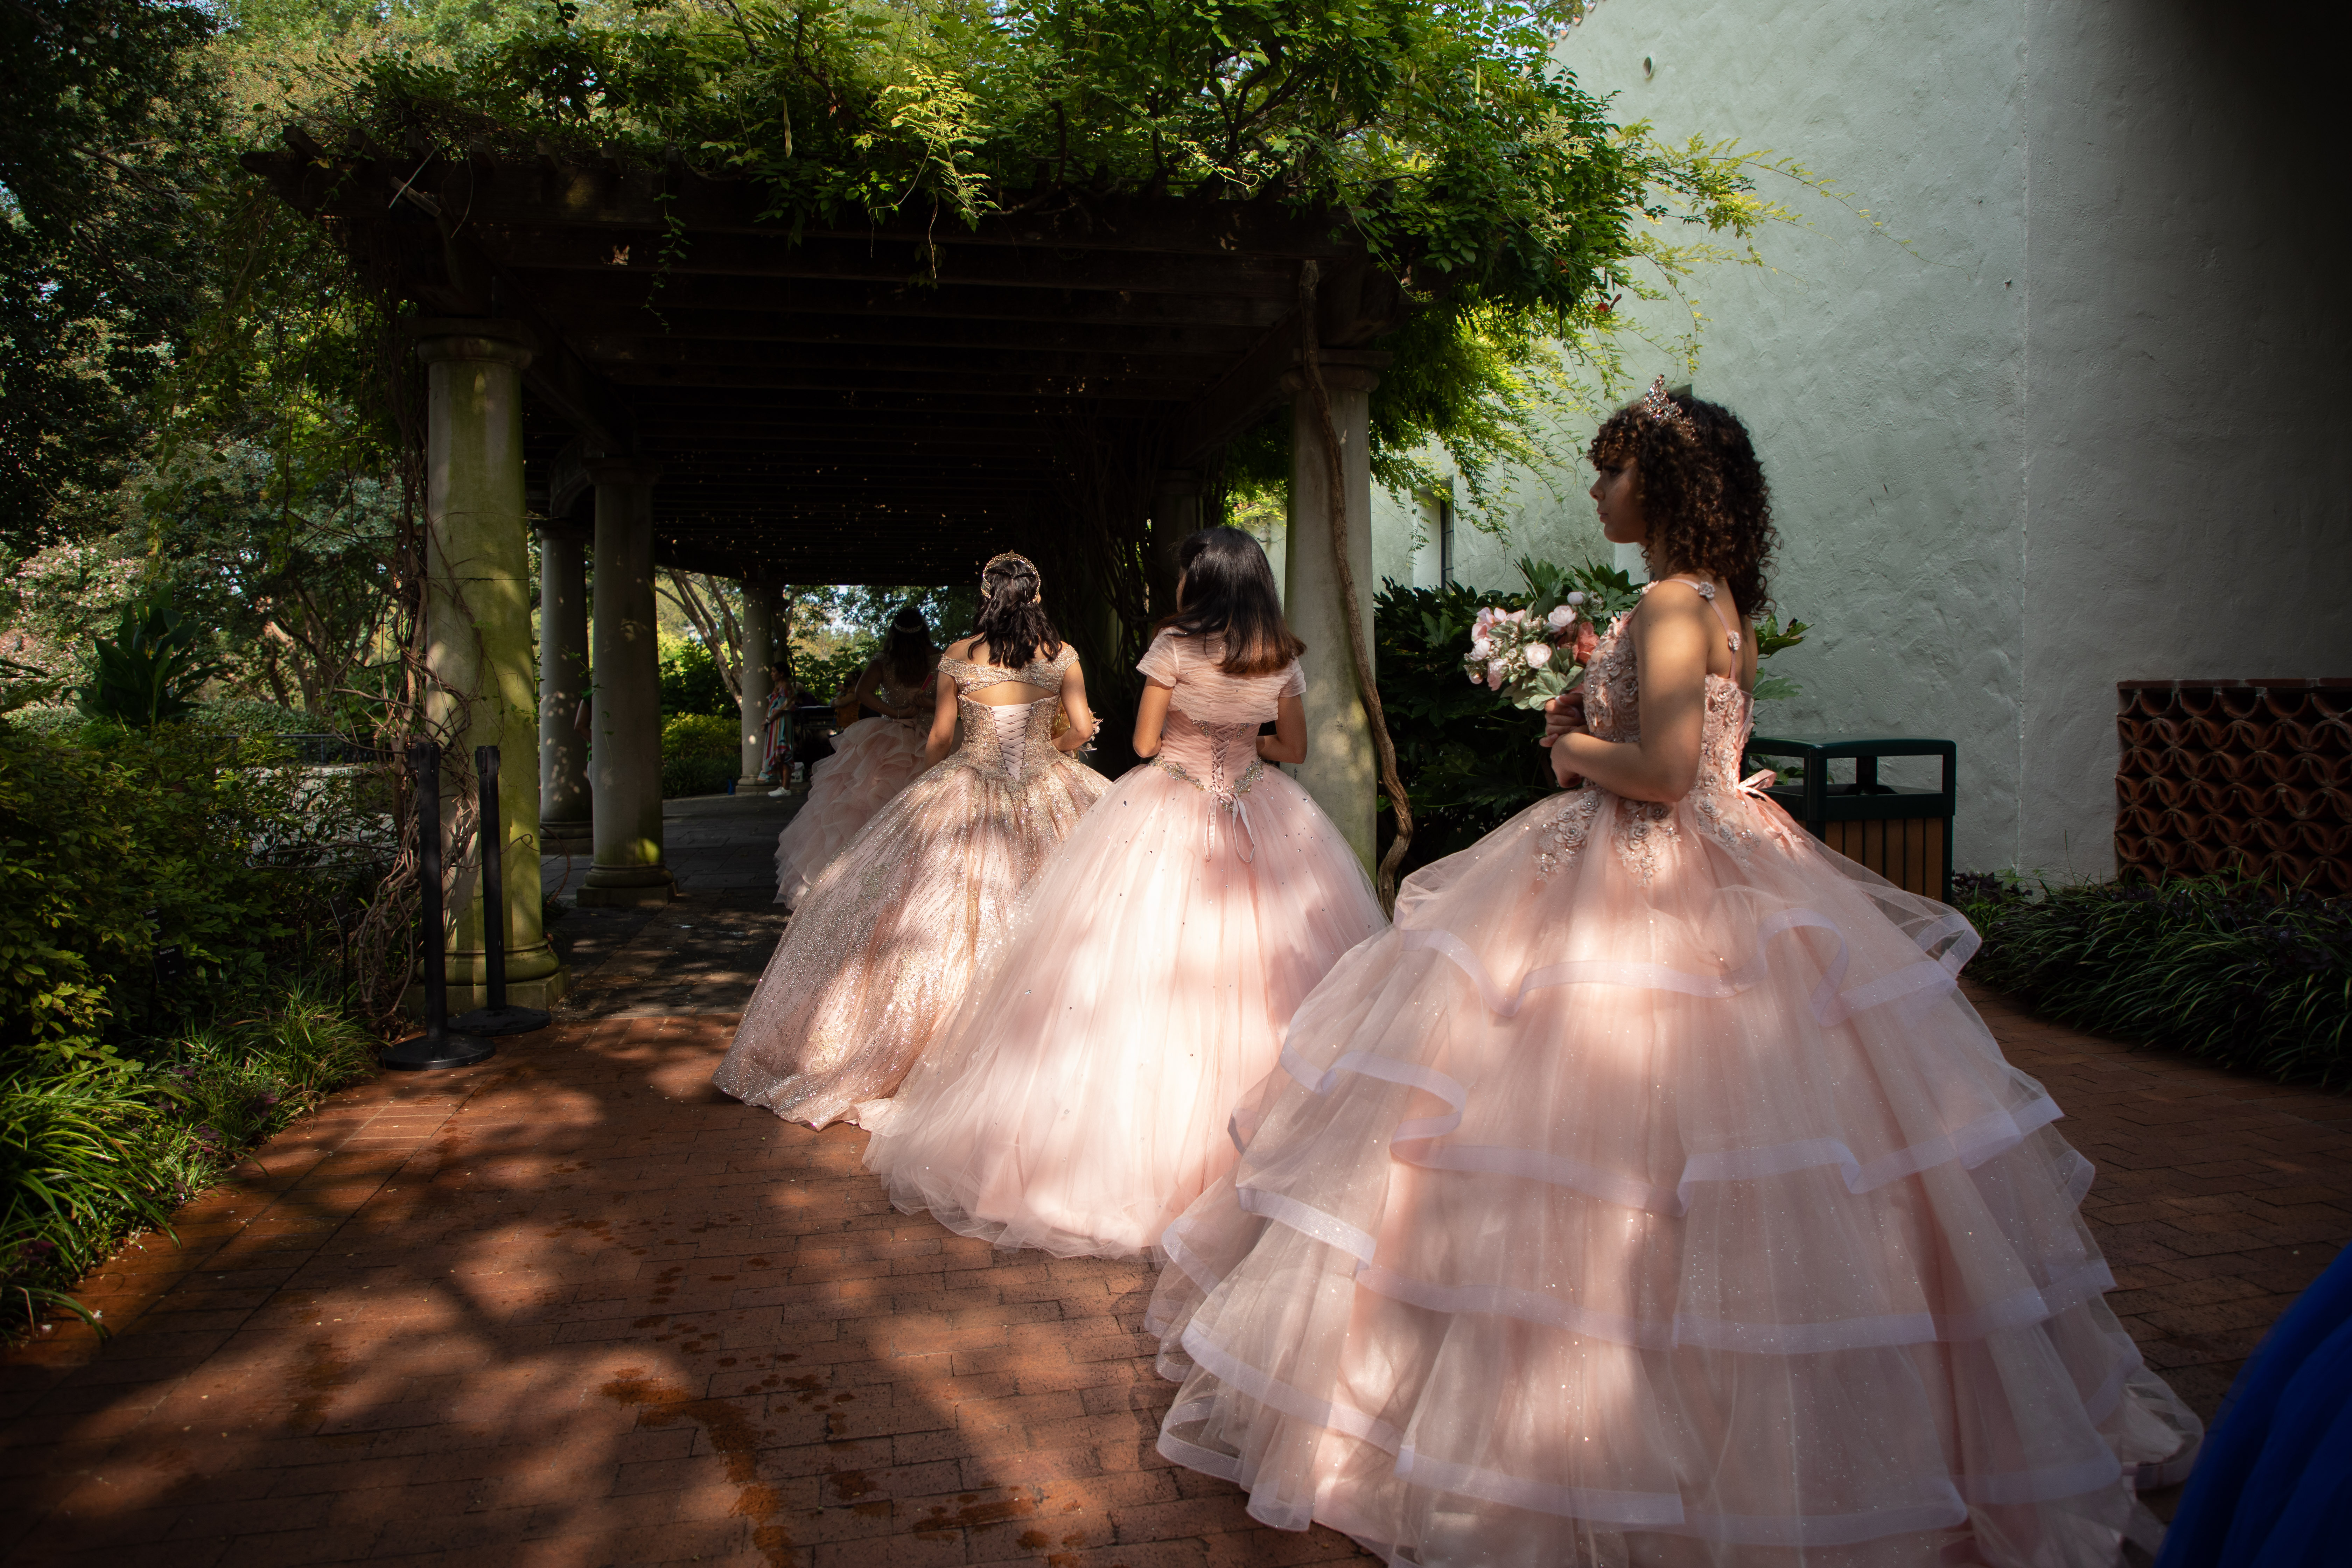 Photo of three girls in pink puffy Quince dresses on stage at the Dallas Arboretum.